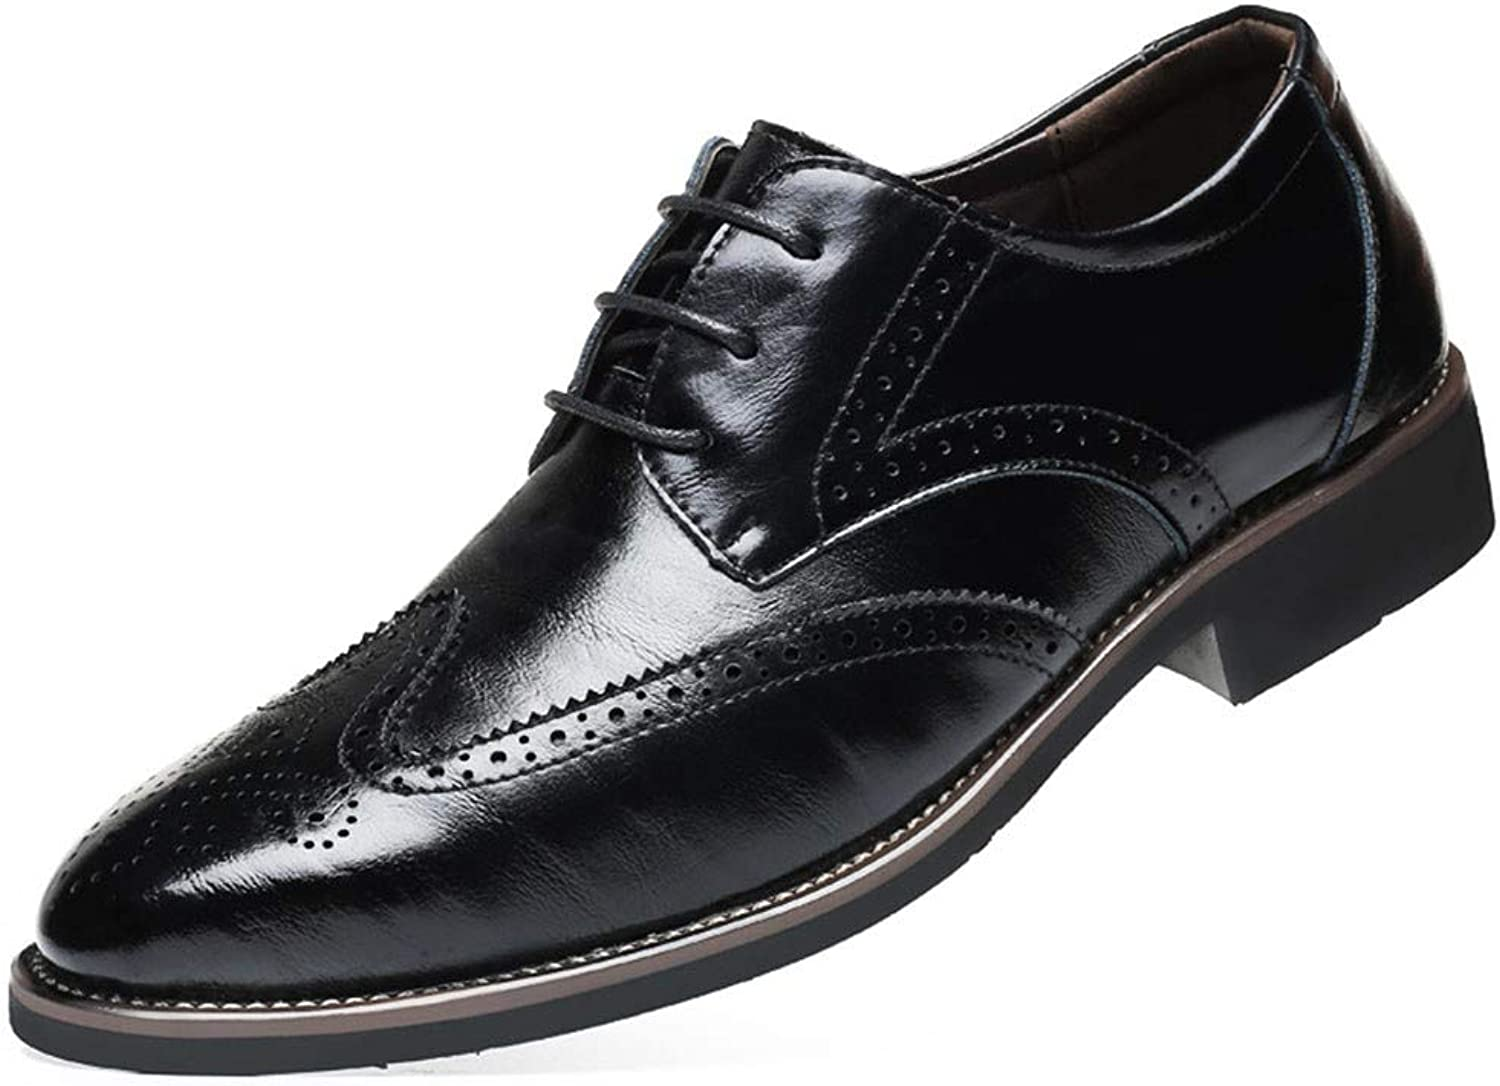 AADDIN Leather shoes Men Dress shoes Formal shoes Flats For Wedding Office Business